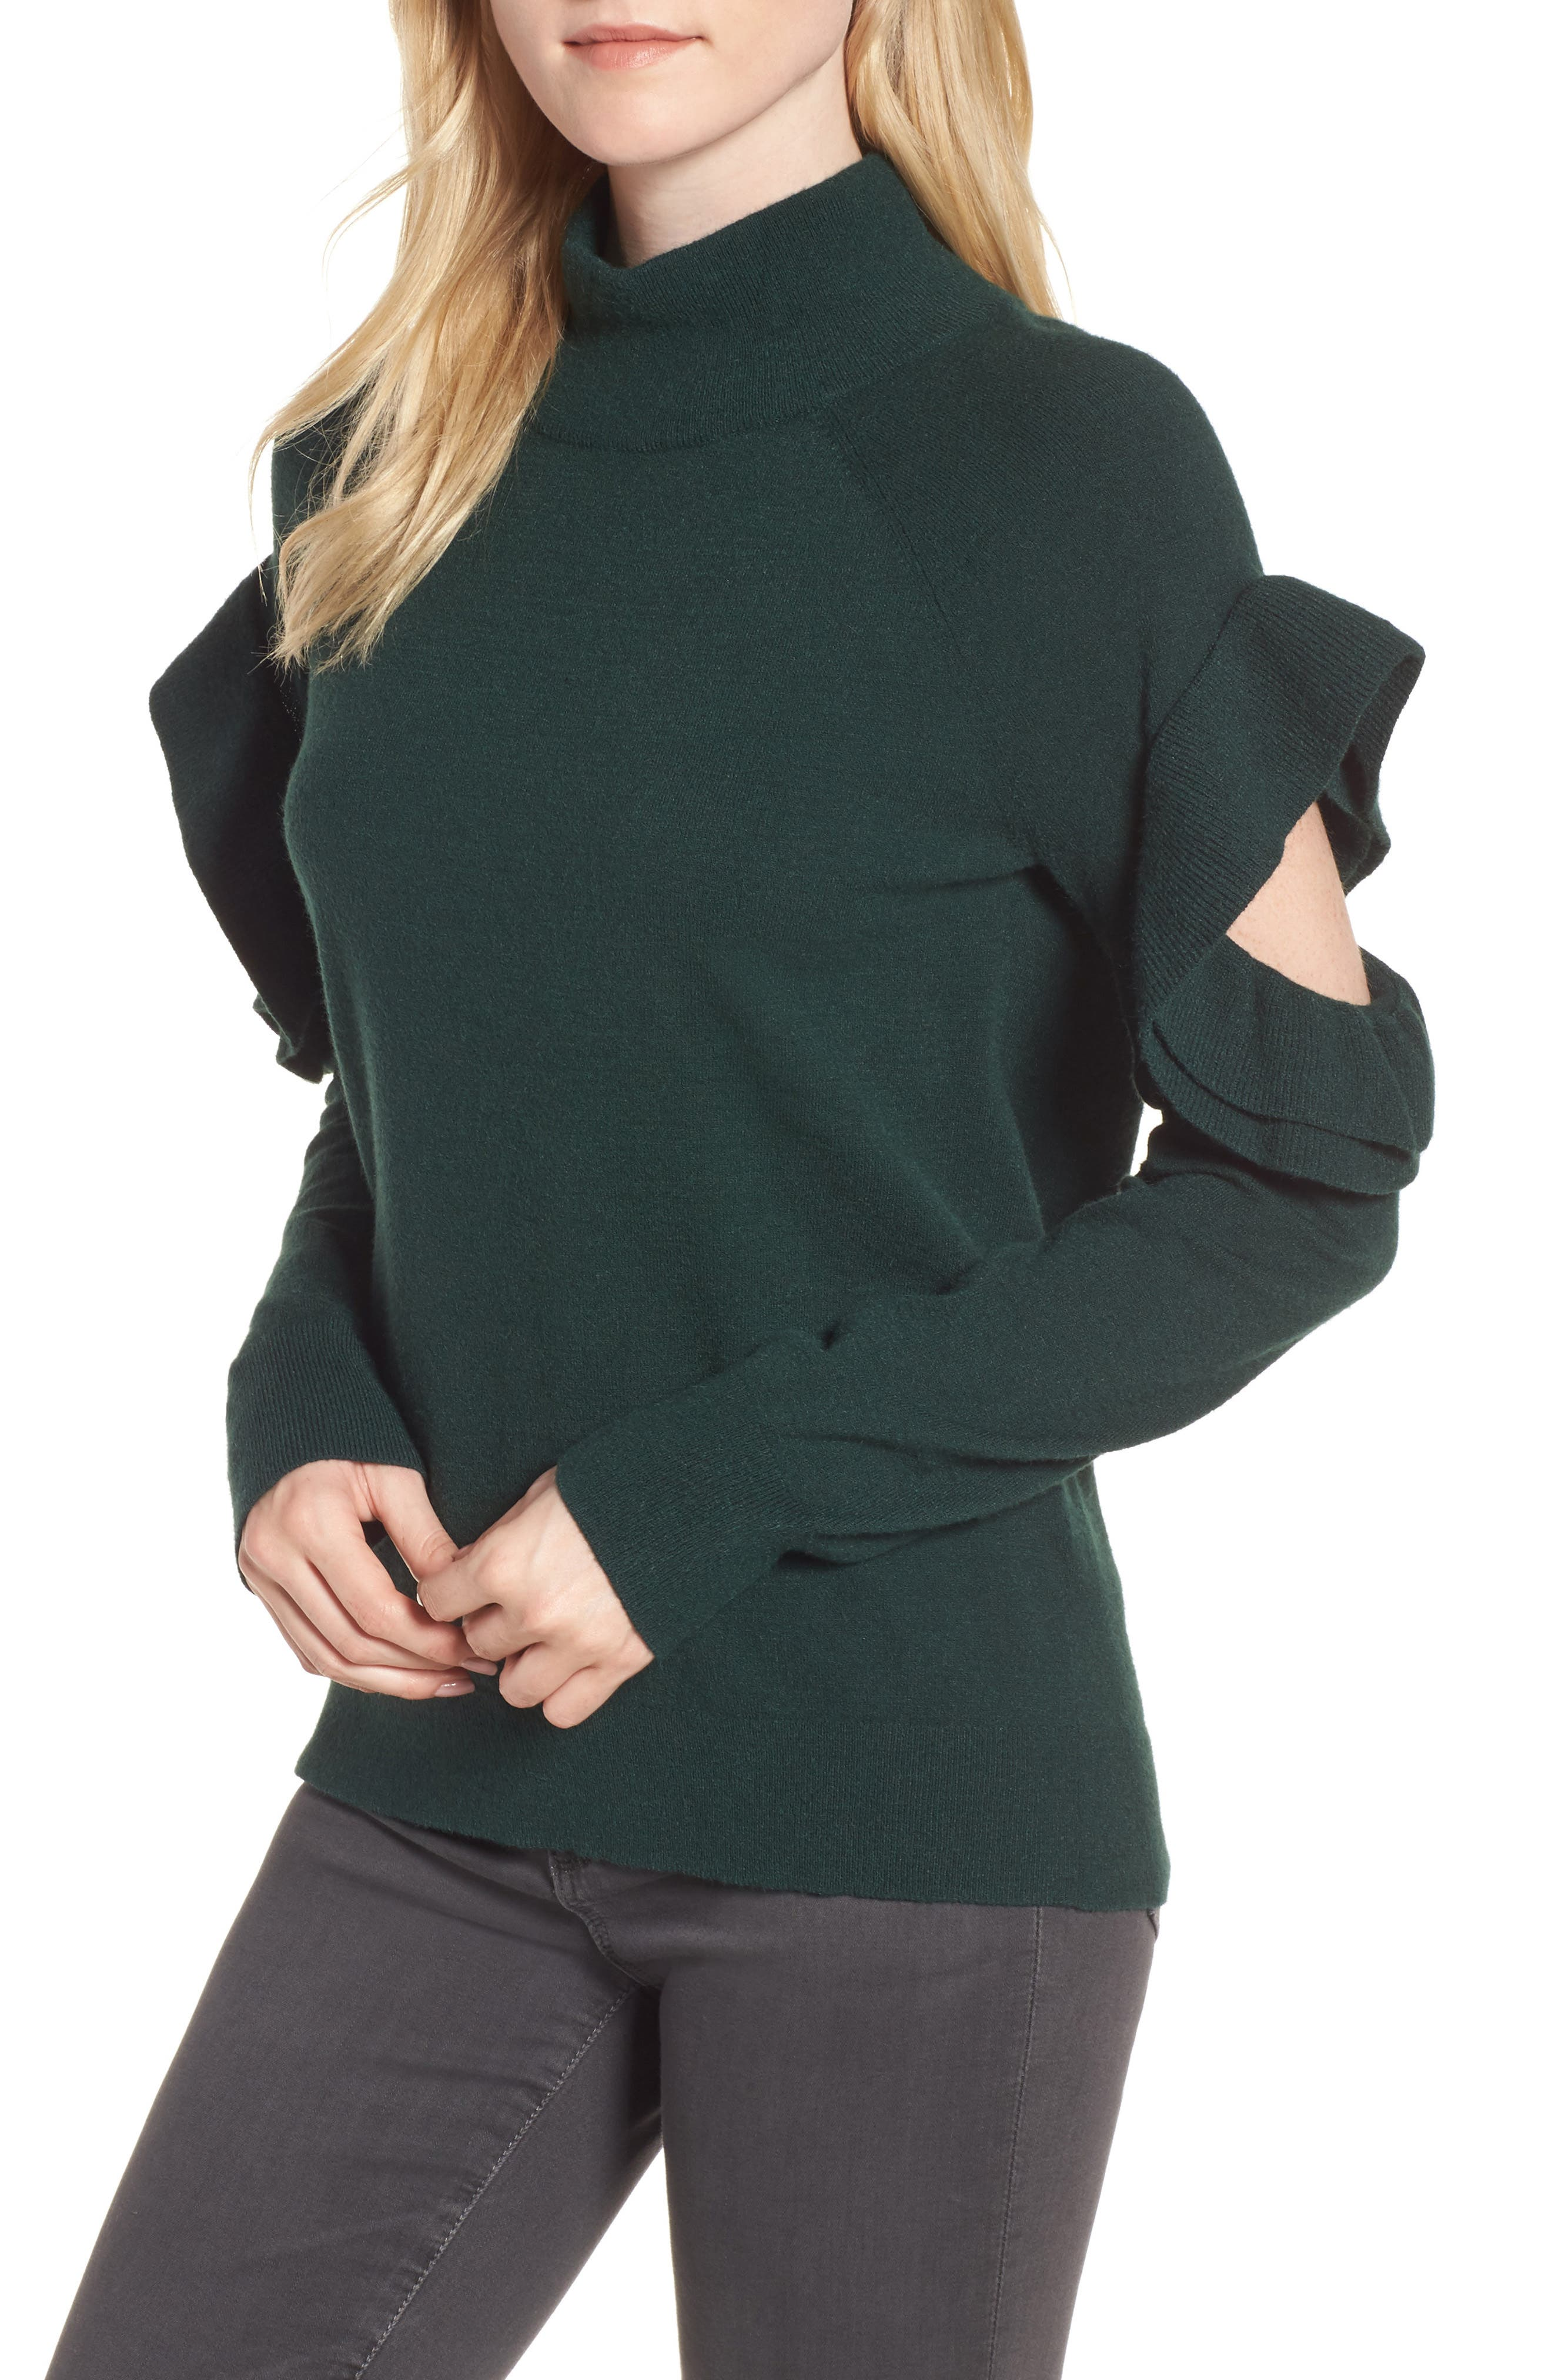 Alternate Image 1 Selected - Chelsea28 Ruffle Sleeve Sweater